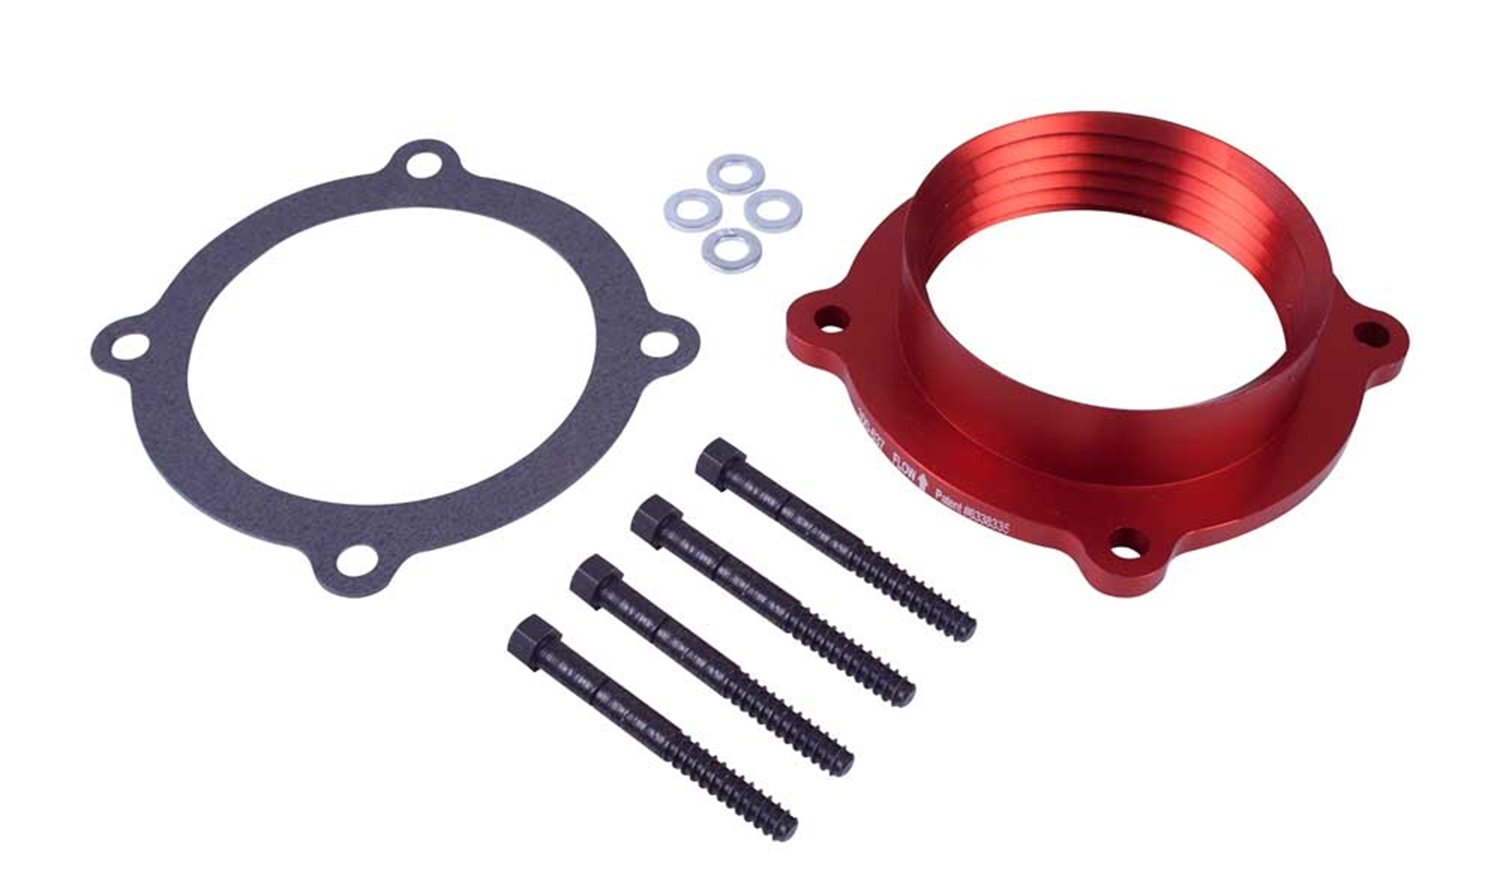 Airaid 300-637 PowerAid? Throttle Body Spacer Easy To Install with Basic Hand Tools